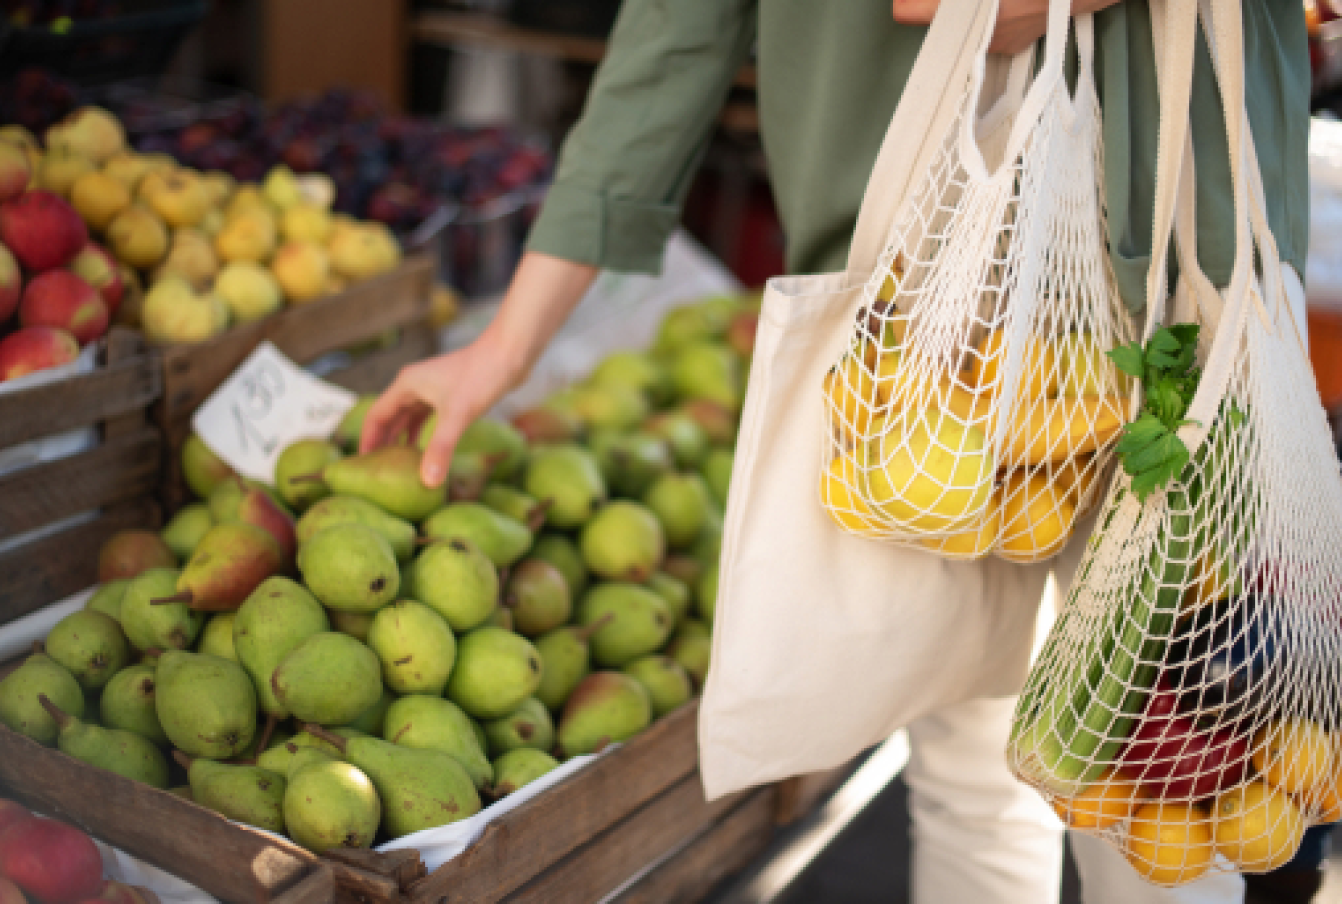 A lady using tote bags rather than plastic ones to buy produce.